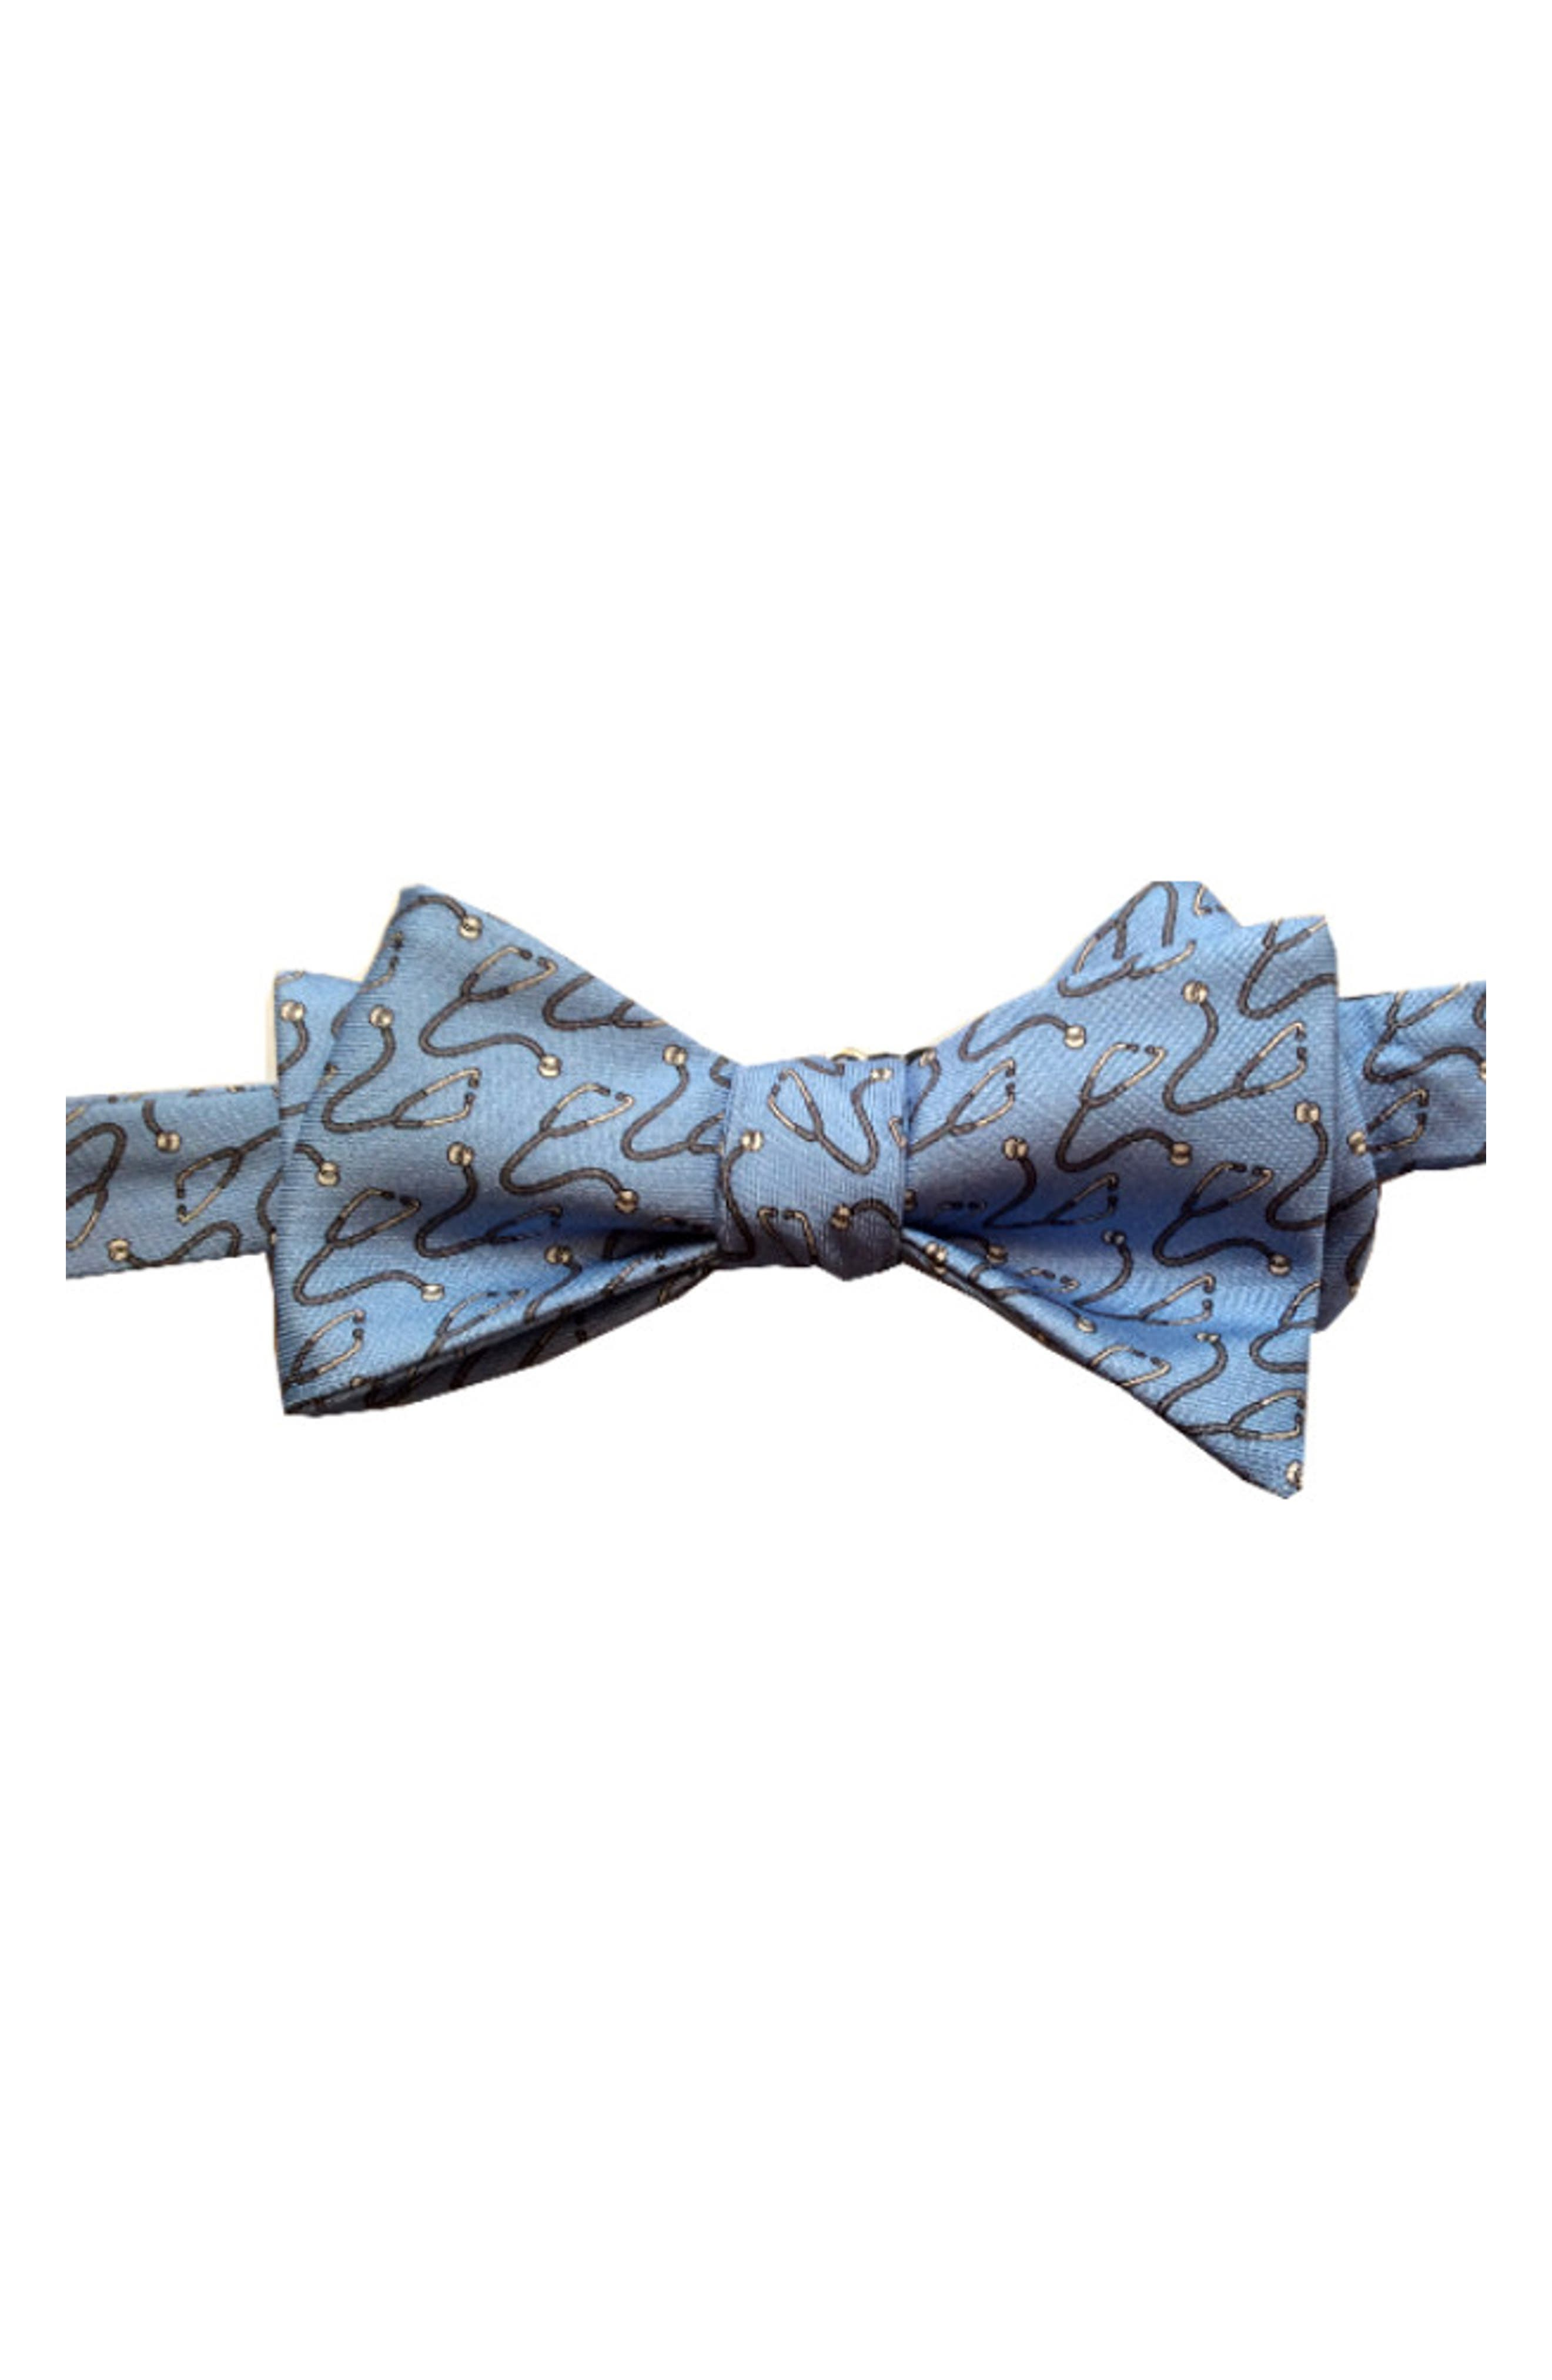 Doctor Silk Bow Tie,                             Main thumbnail 1, color,                             420